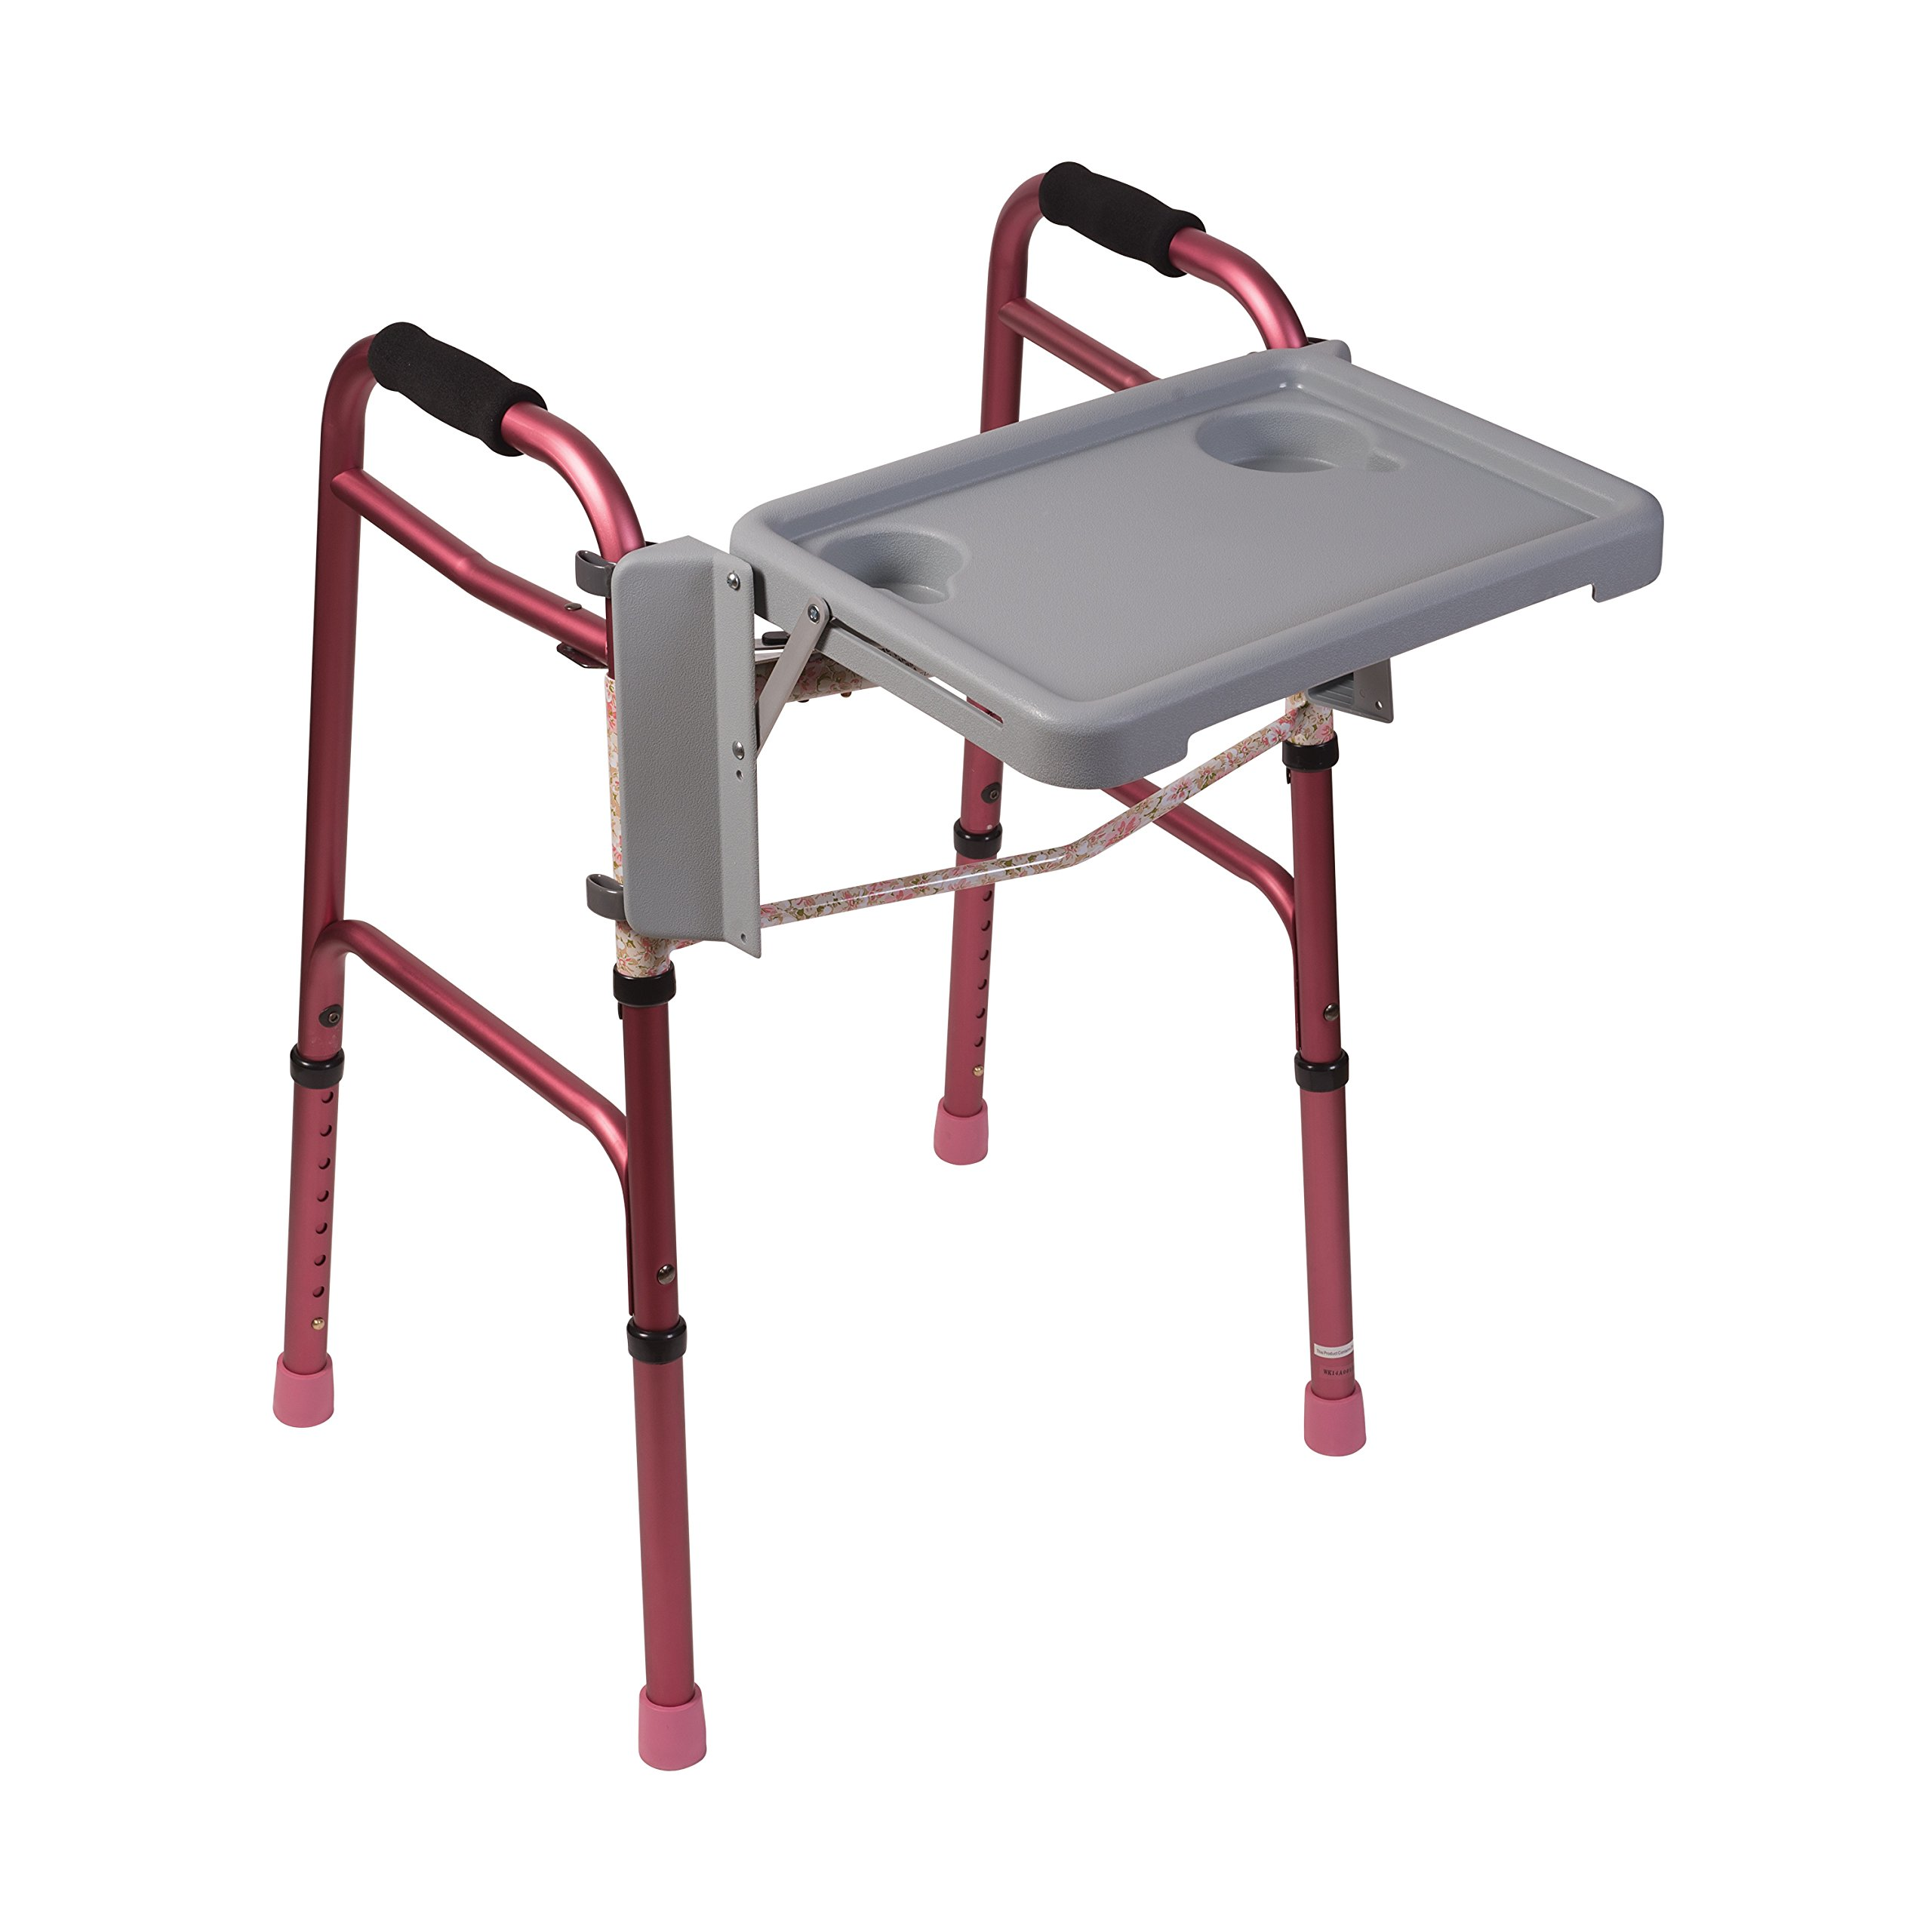 Folding Walker Tray - Foldable Walkers Tray Table with Cup Holders, Home Walkers Trays for Seniors and Handicap, Tool Free, Gray